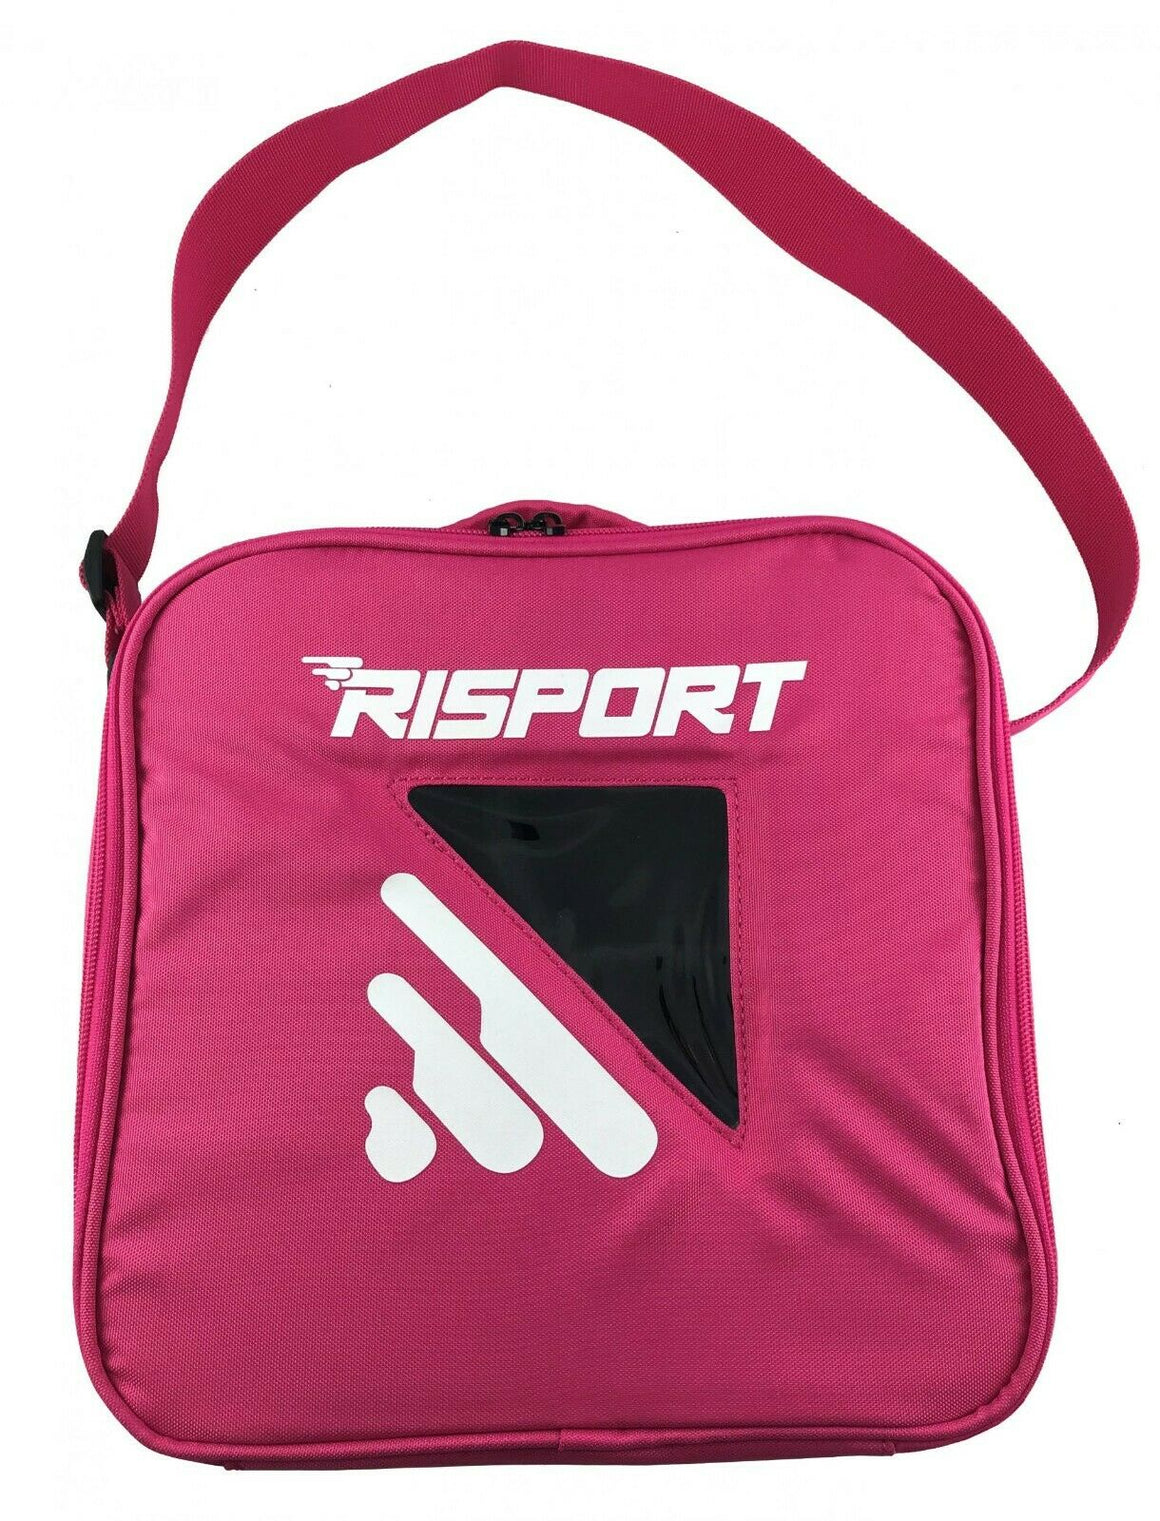 Risport Wheel Bag